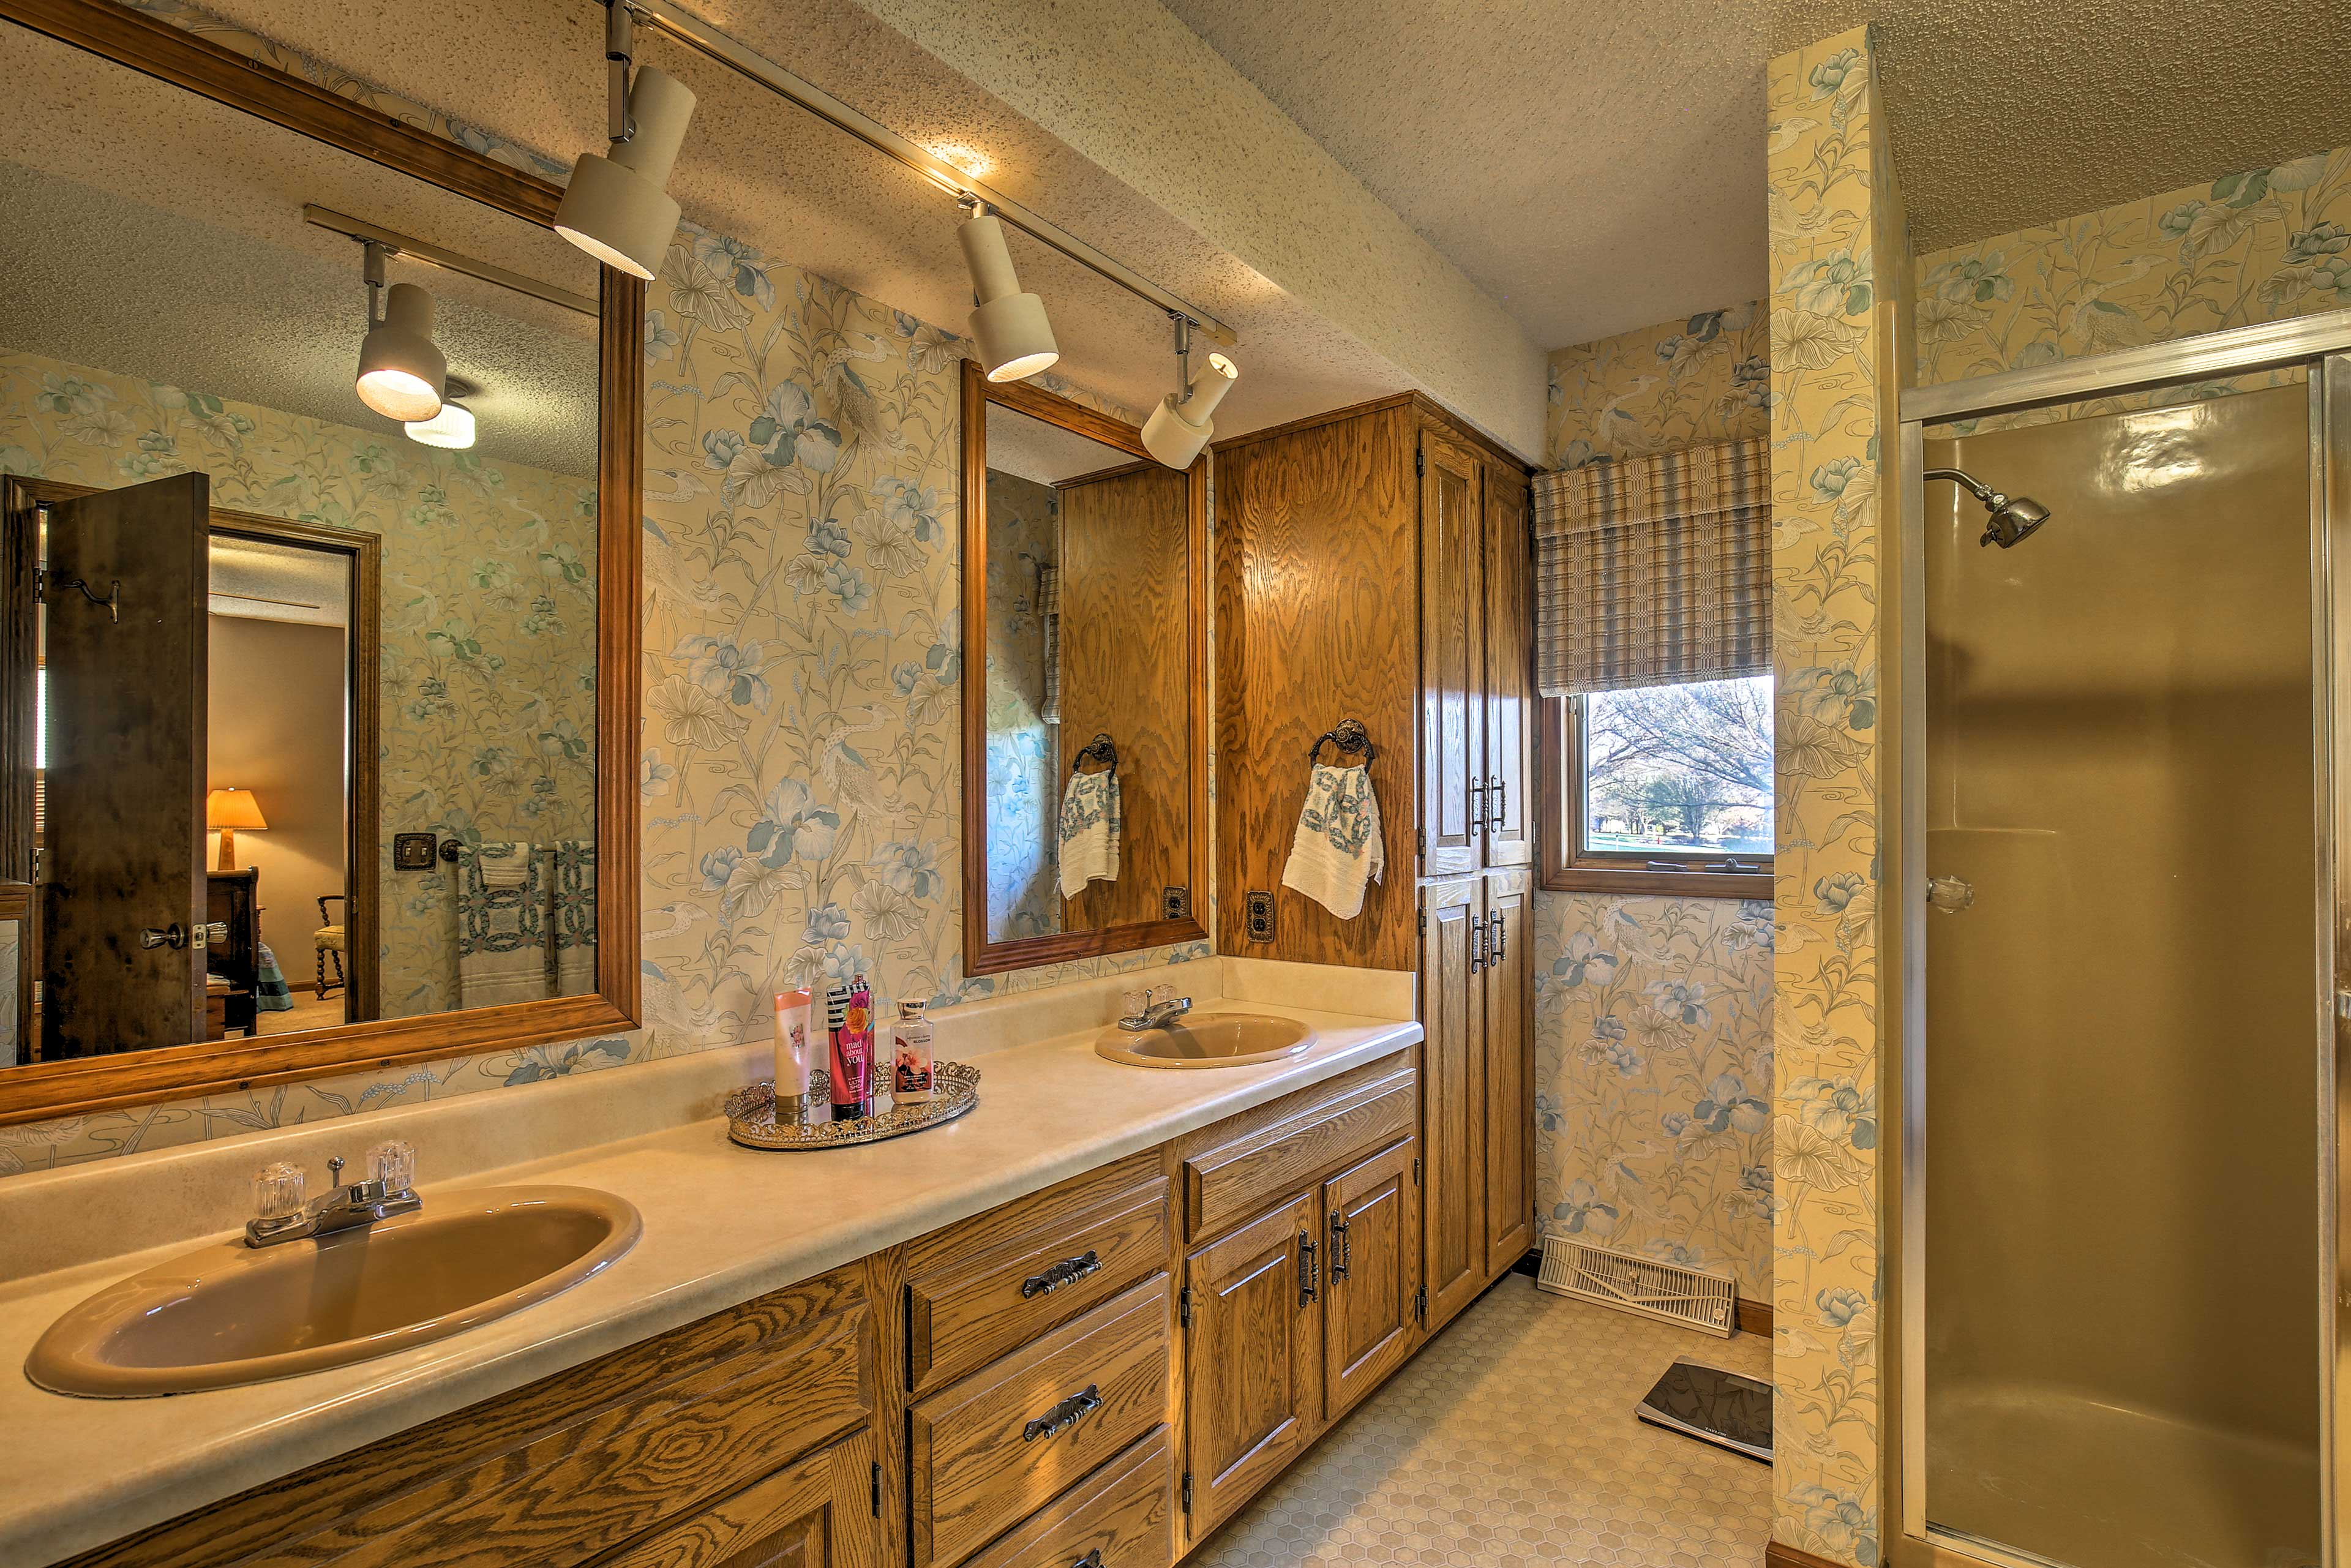 The master bathroom features double sinks and a walk-in shower.